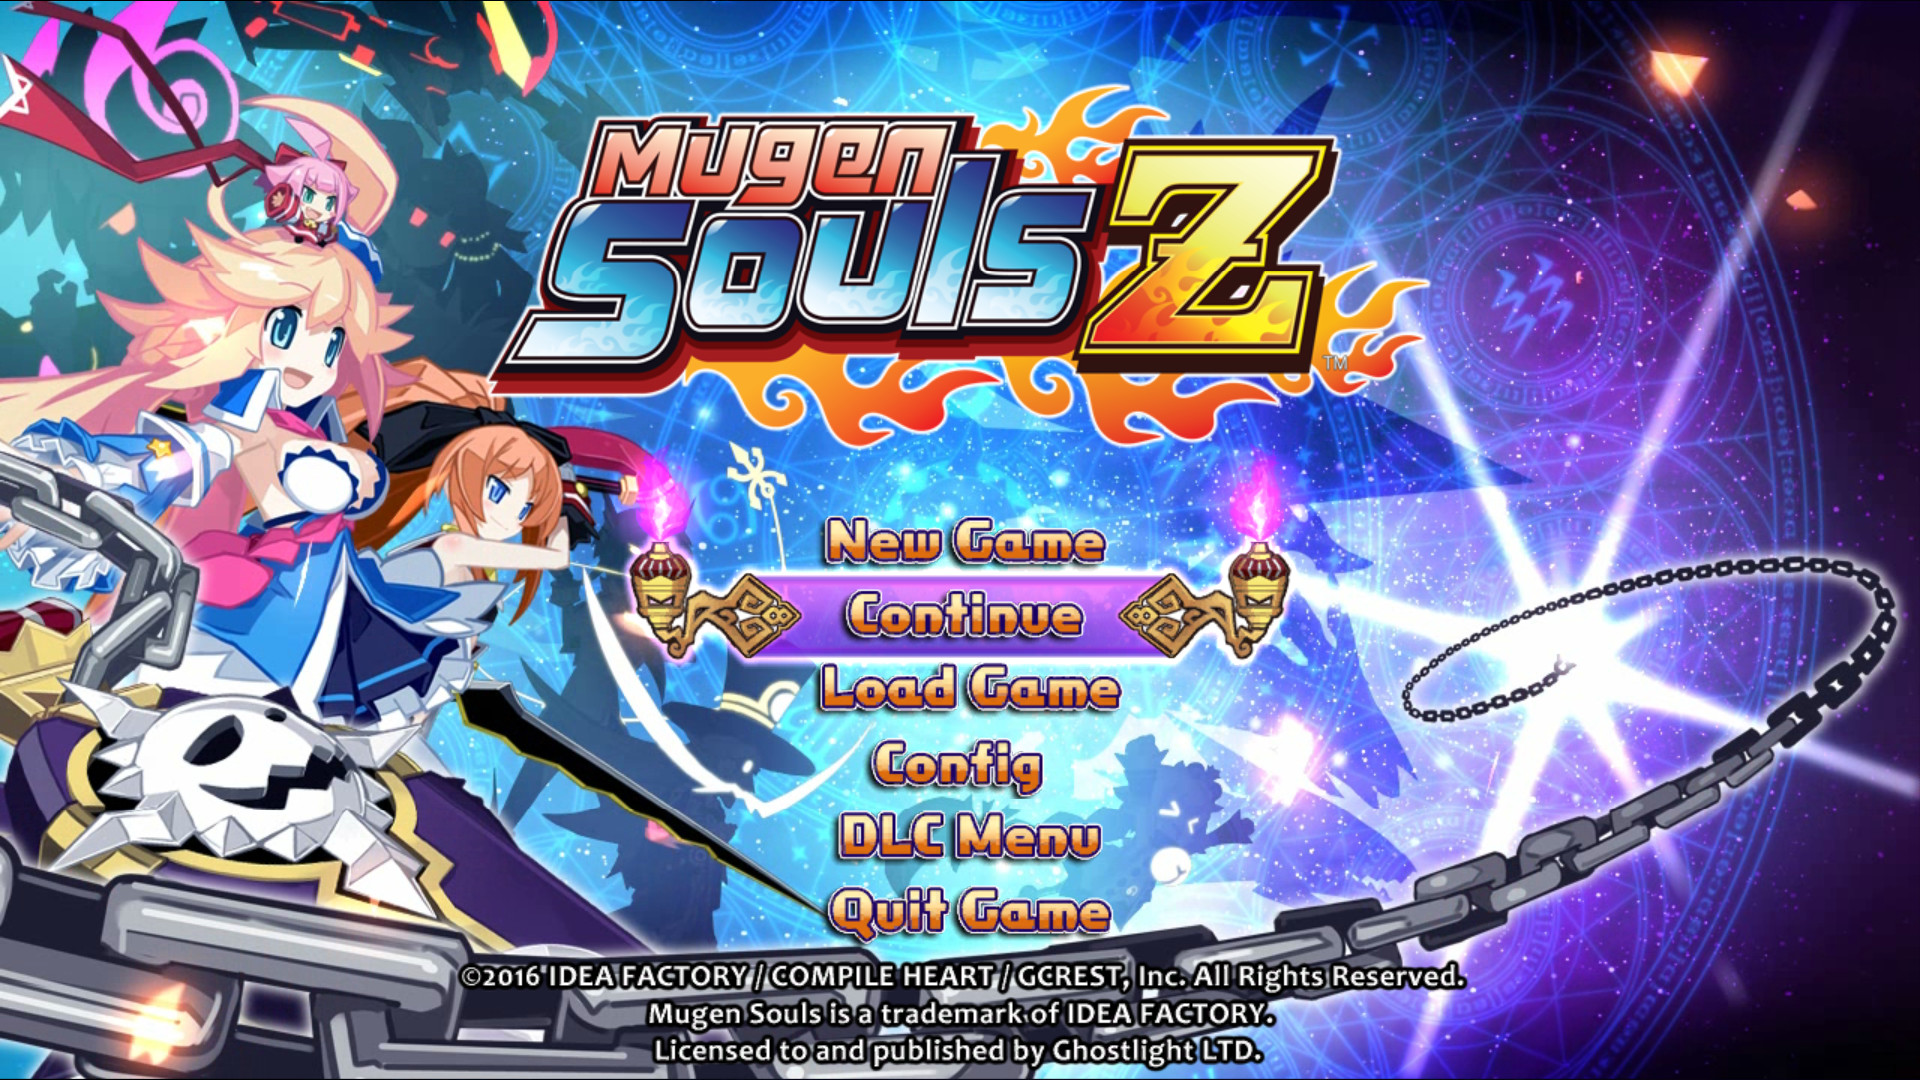 Mugen Souls Z - Jiggly Co. Equipment Bundle 3 screenshot